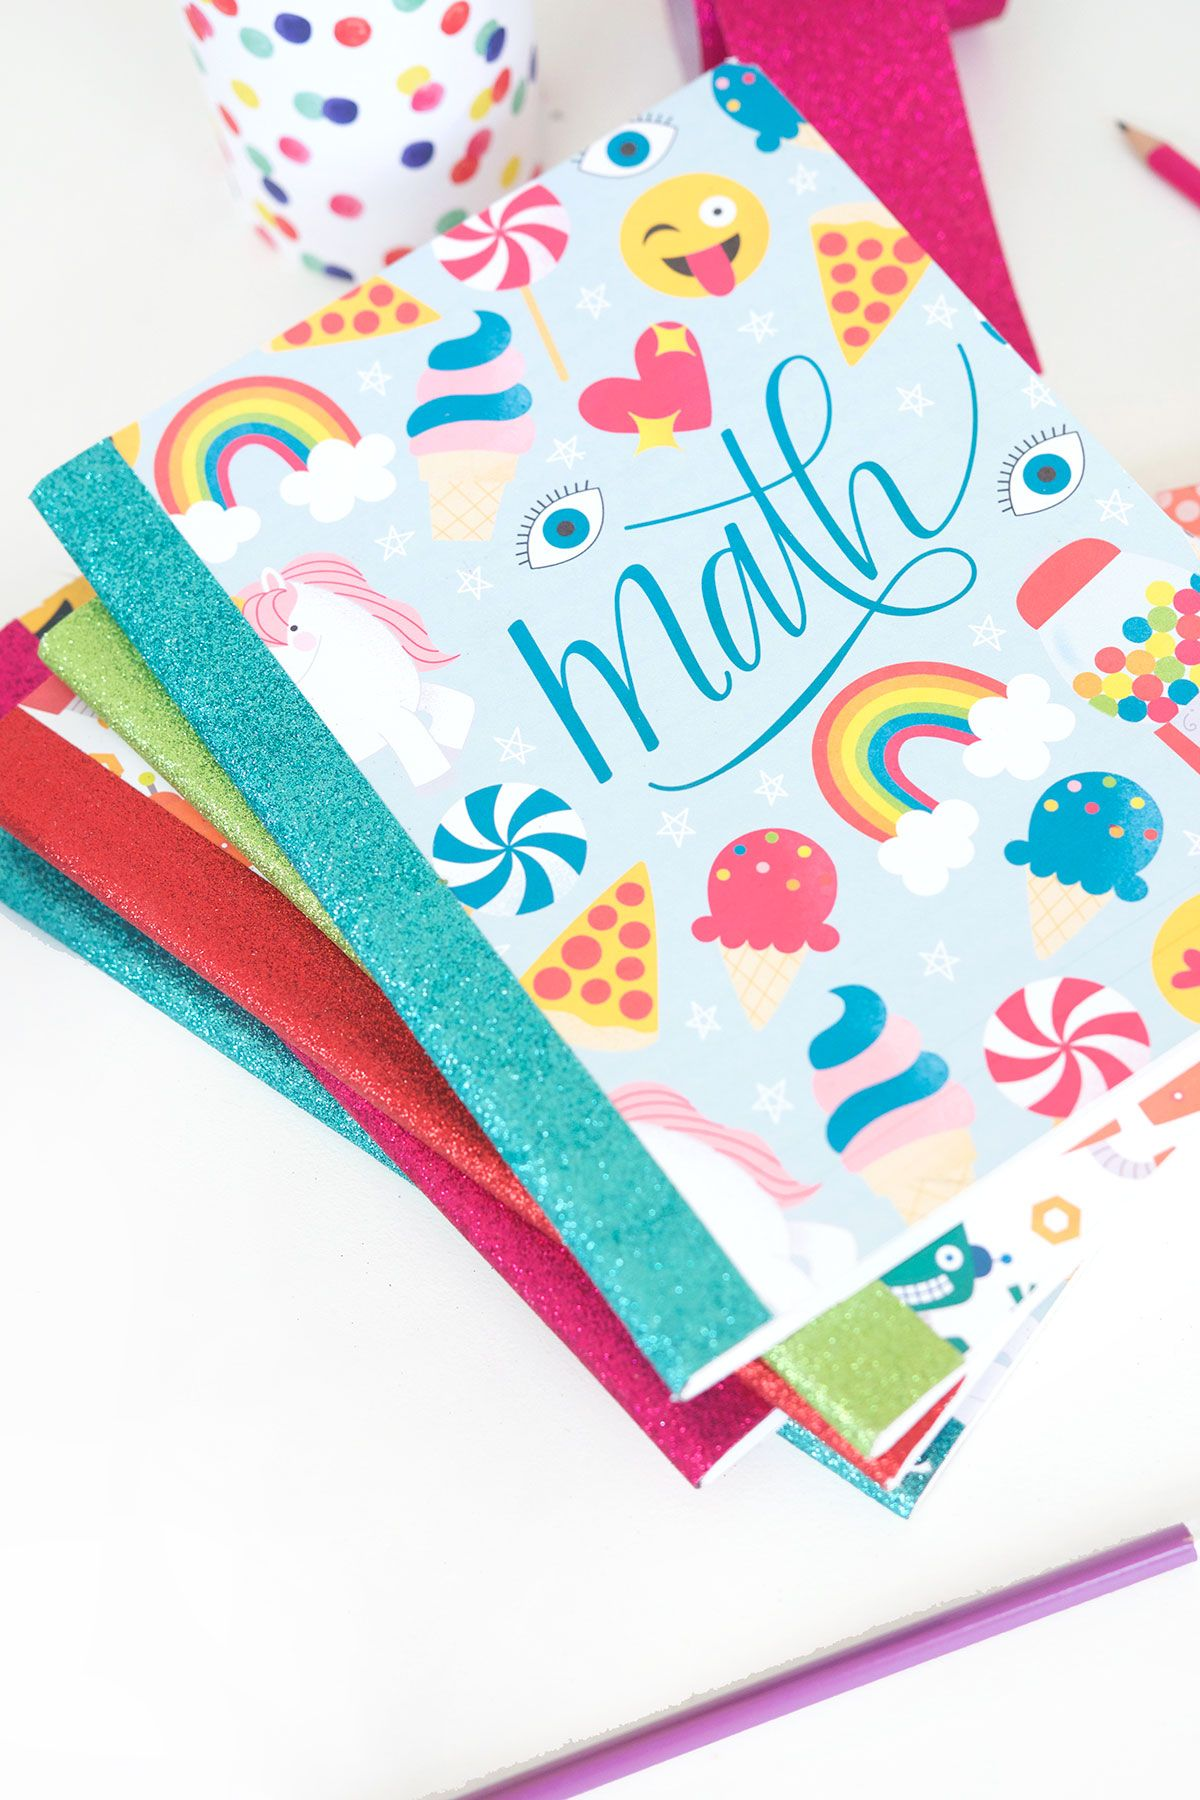 Printable Composition Book Covers Diy Notebook Cover For